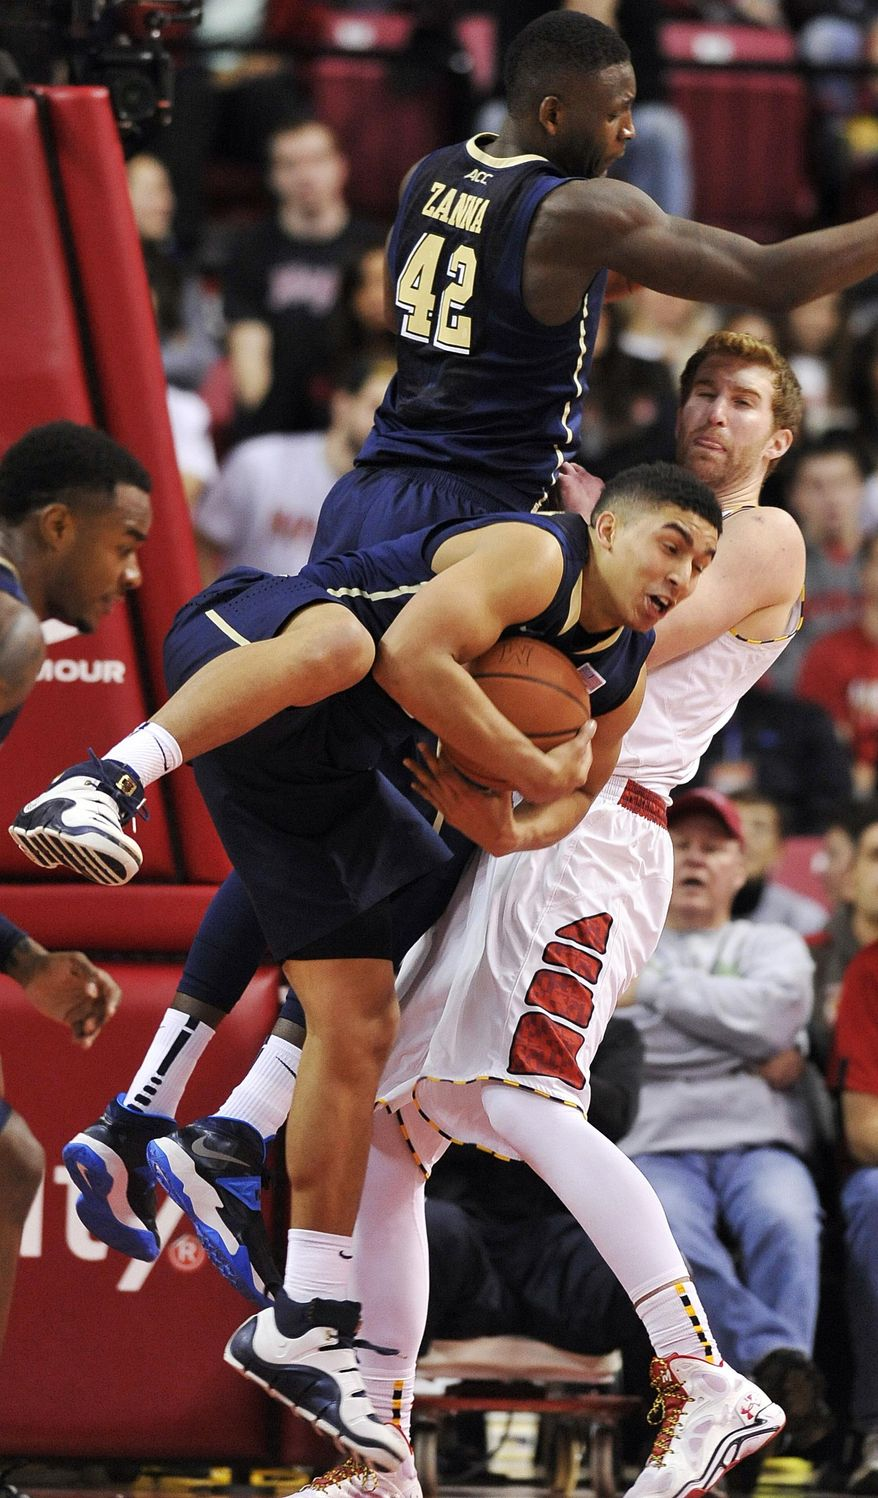 Pittsburgh's James Robinson, center front, comes down with a rebound in front of team mate Talib Zanna, behind, and Maryland's Evan Smotrycz, right, in the second half of an NCAA college basketball game Saturday, Jan. 25, 2014, in College Park, Md. Pittsburgh won 83-79. (AP Photo/Gail Burton)